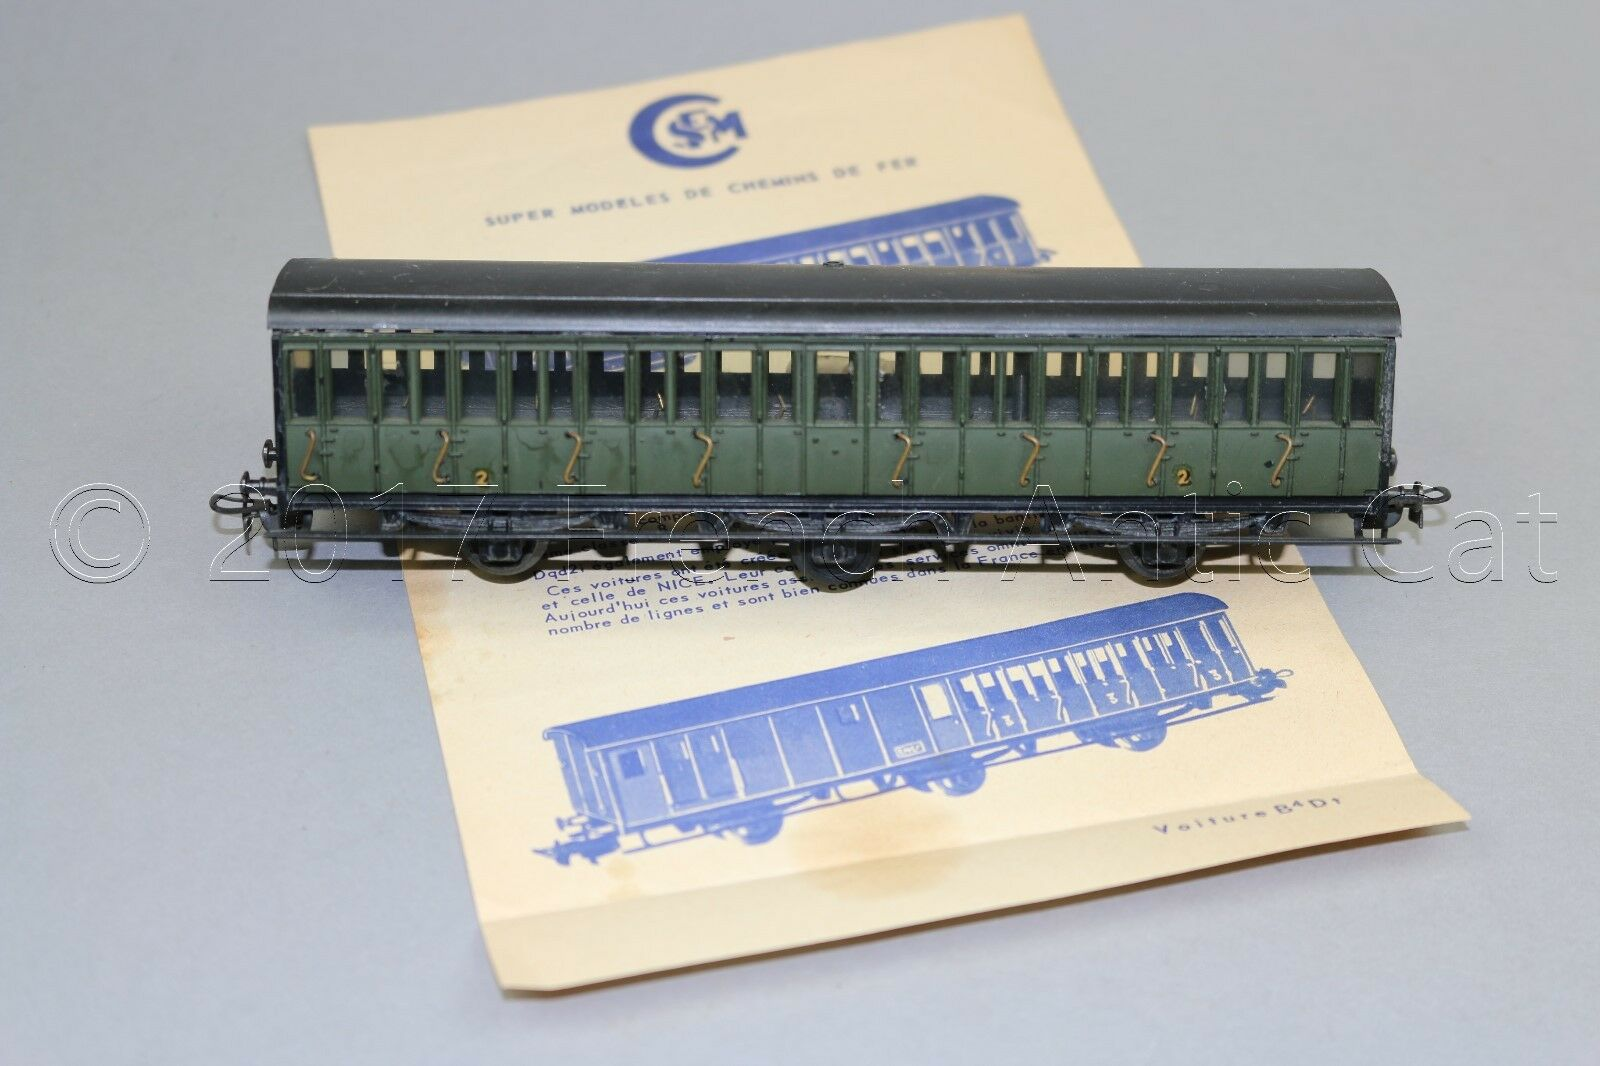 Y408 smcf train oh old car door traveller b8t 2 laterale class 172 mm